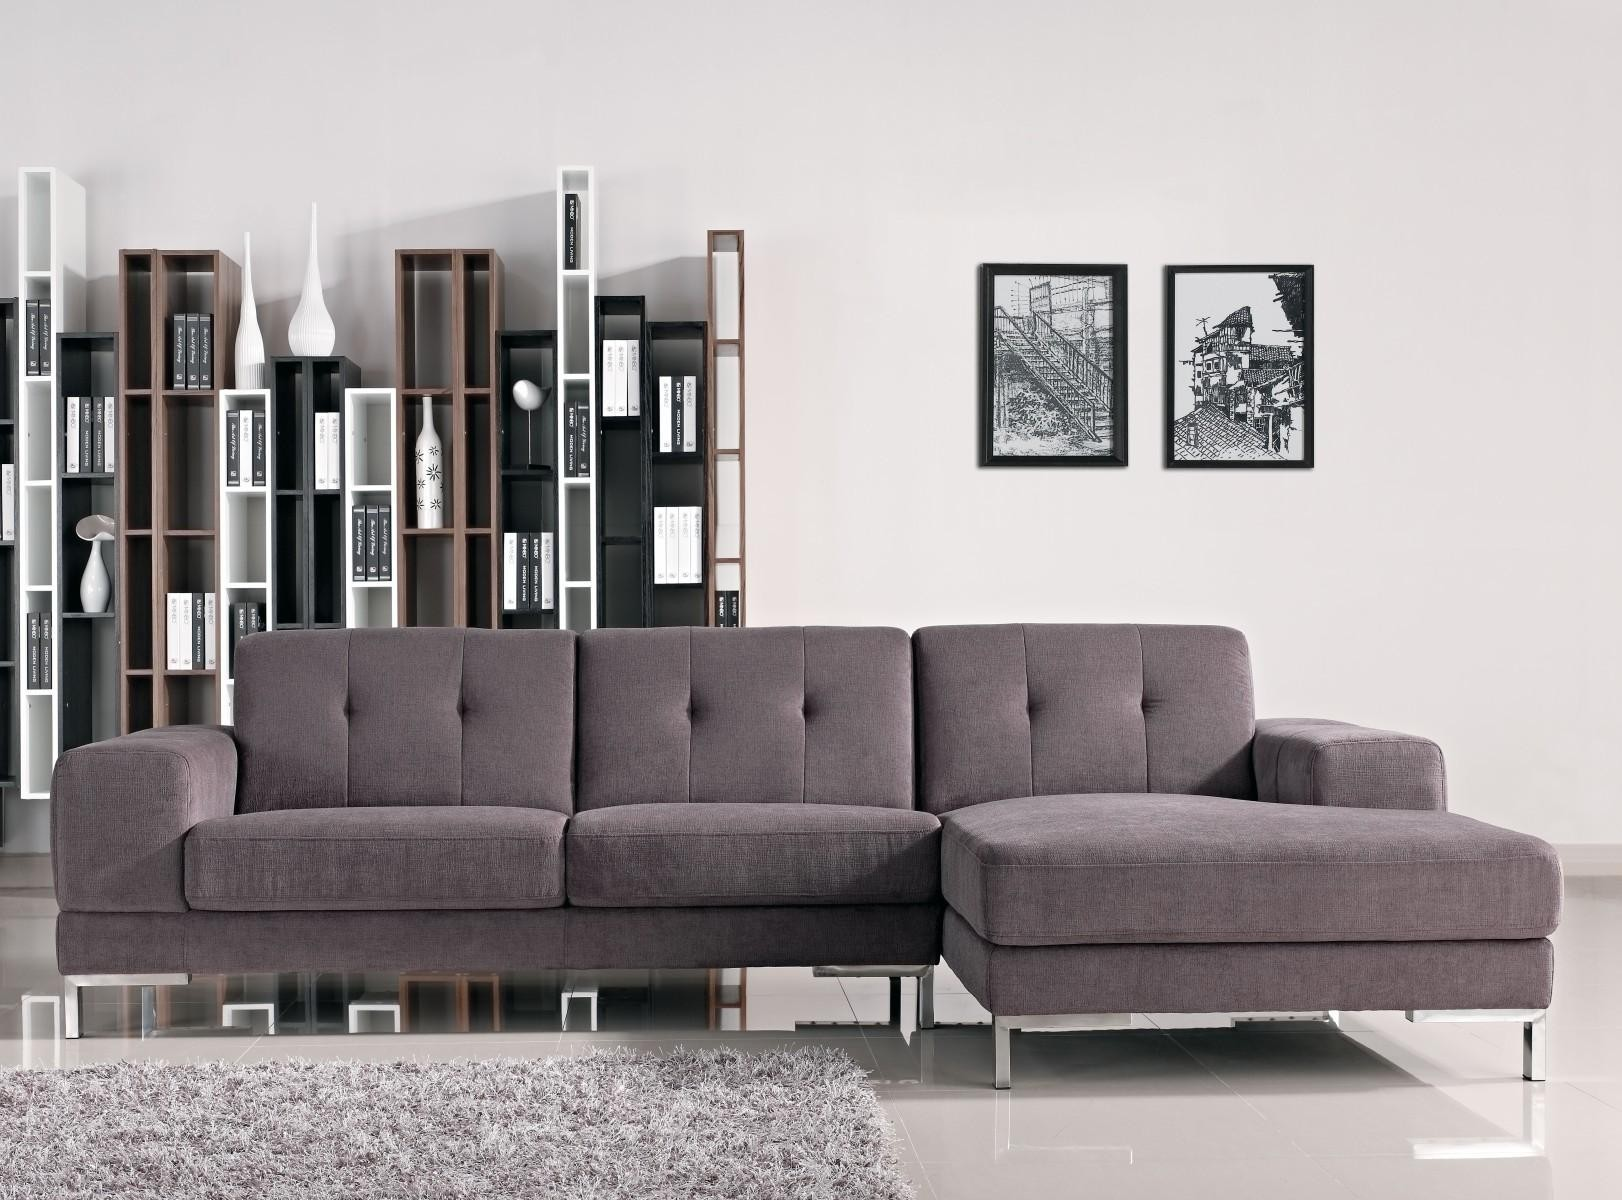 Endearing Design sofas and sectionals with cushion and laminate flooring for living room Ideas